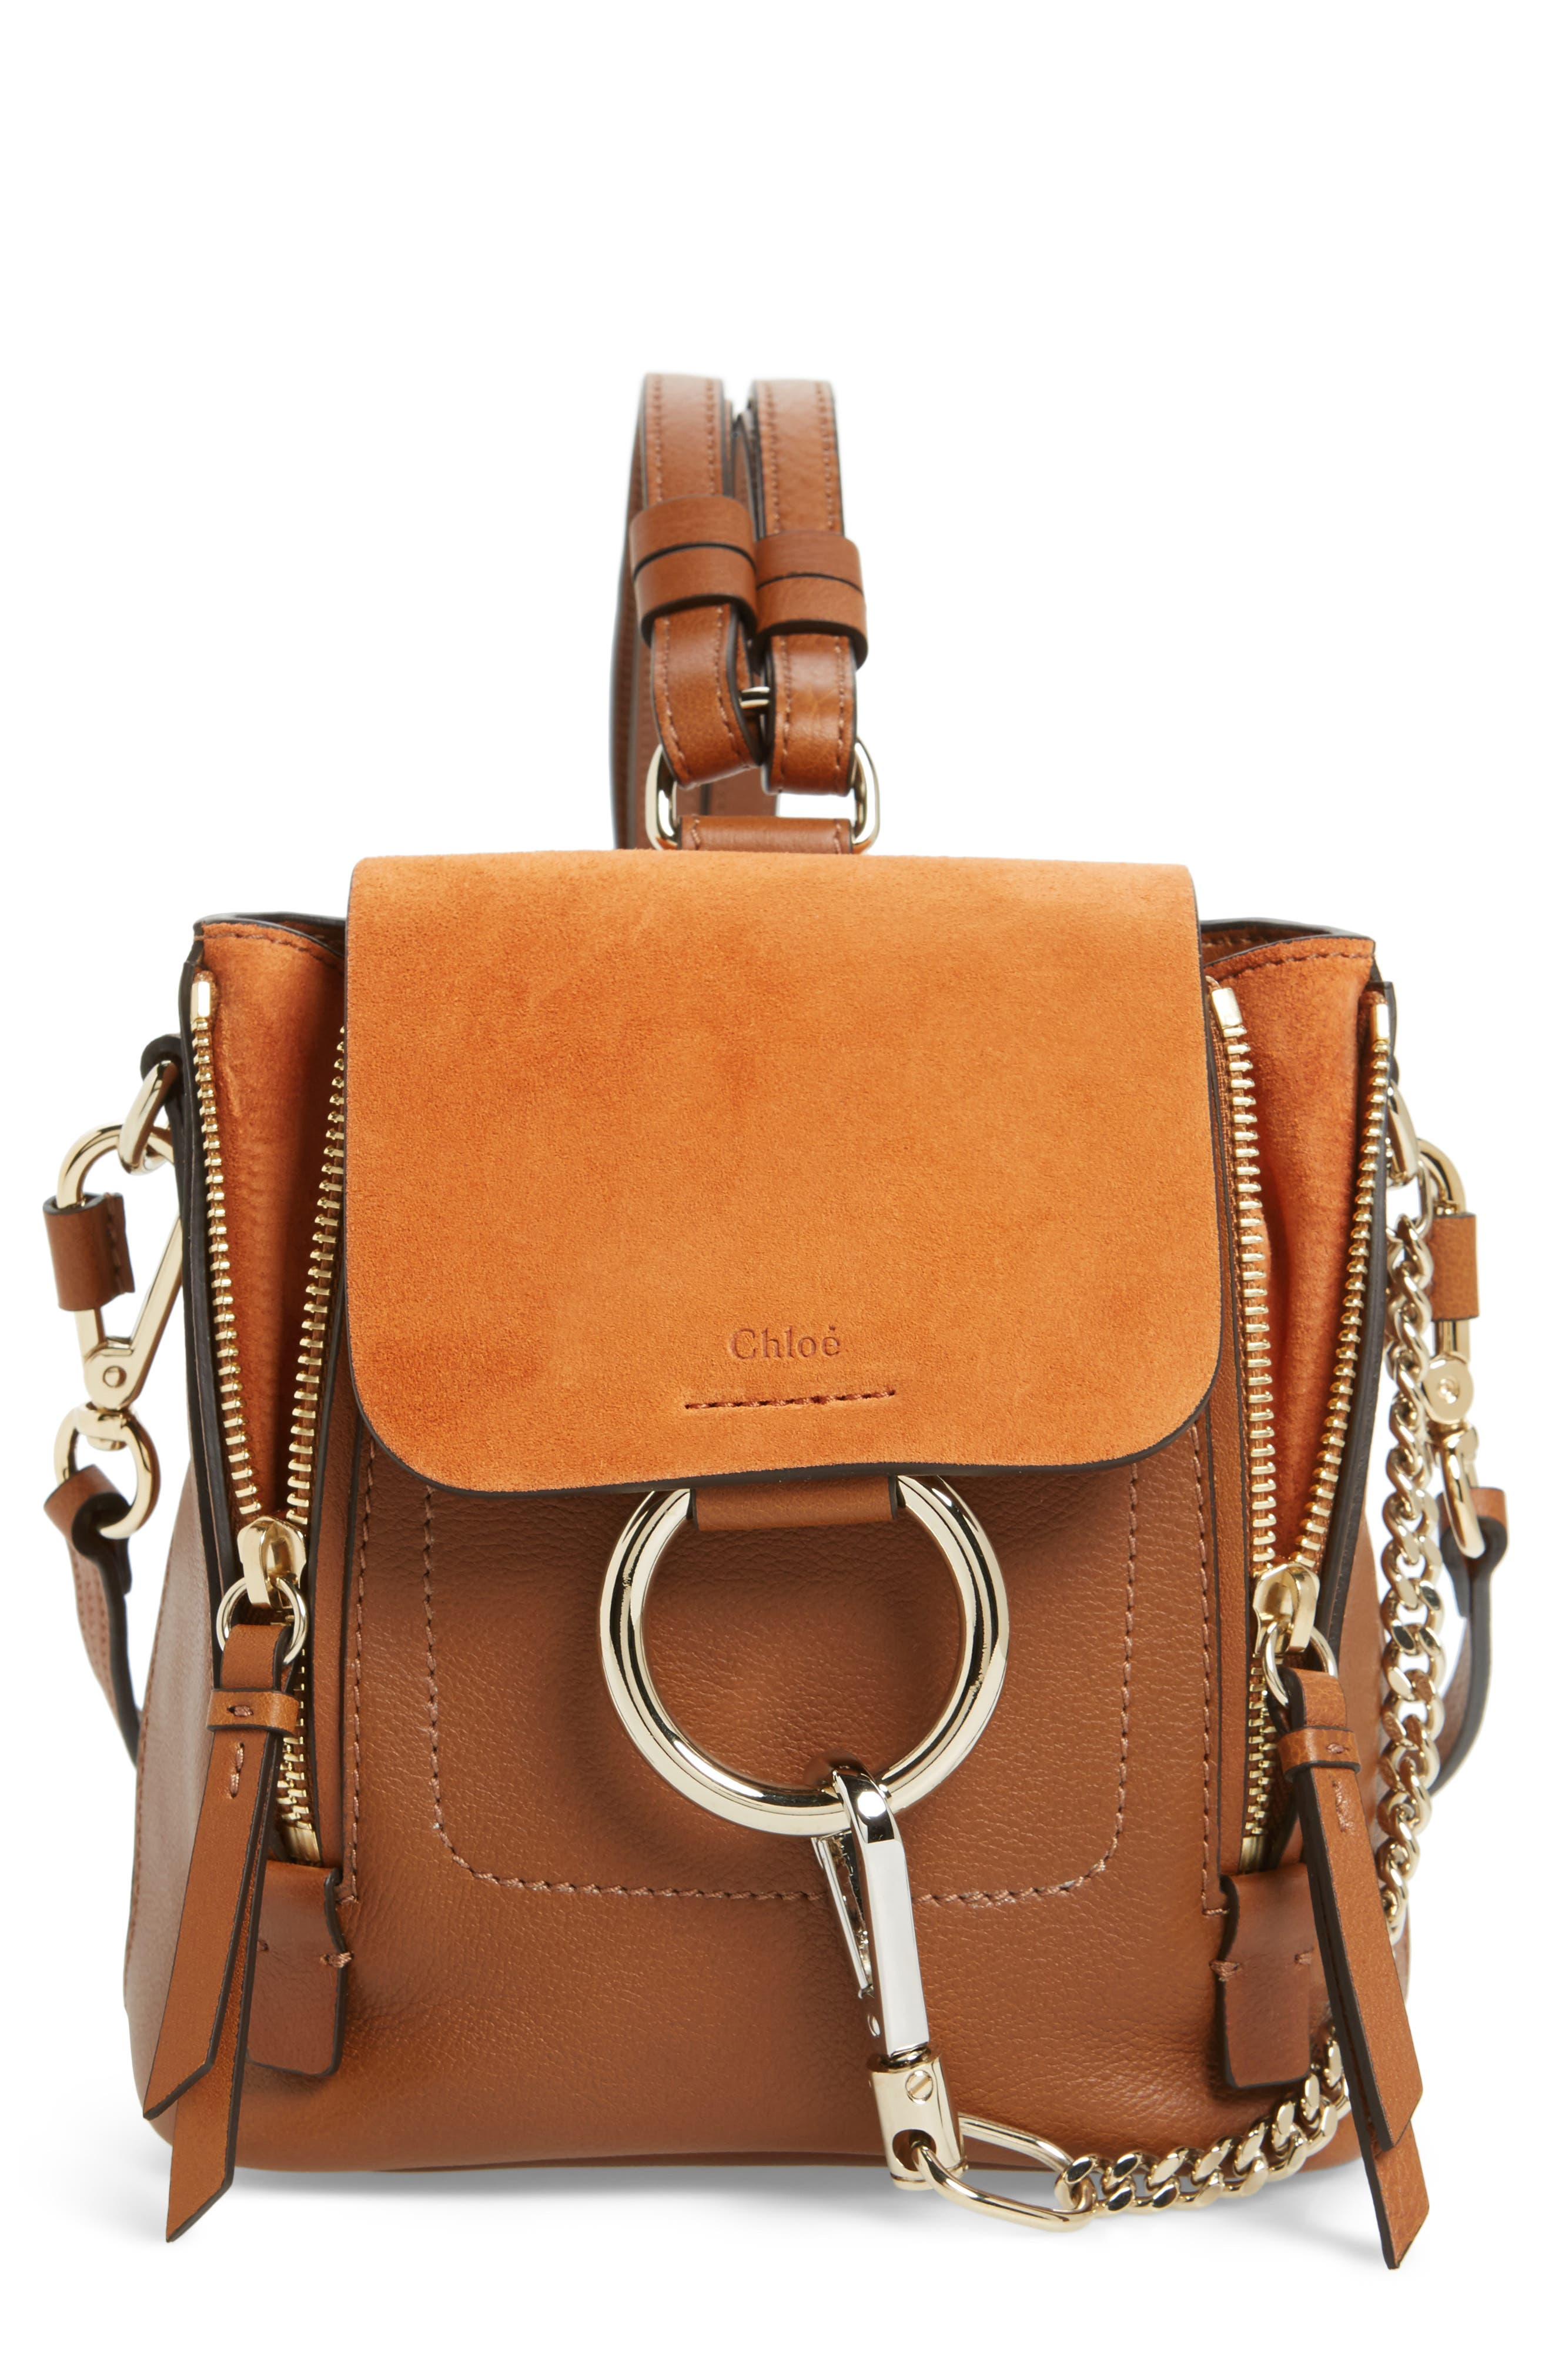 CHLOÉ, Mini Faye Leather & Suede Backpack, Main thumbnail 1, color, TAN